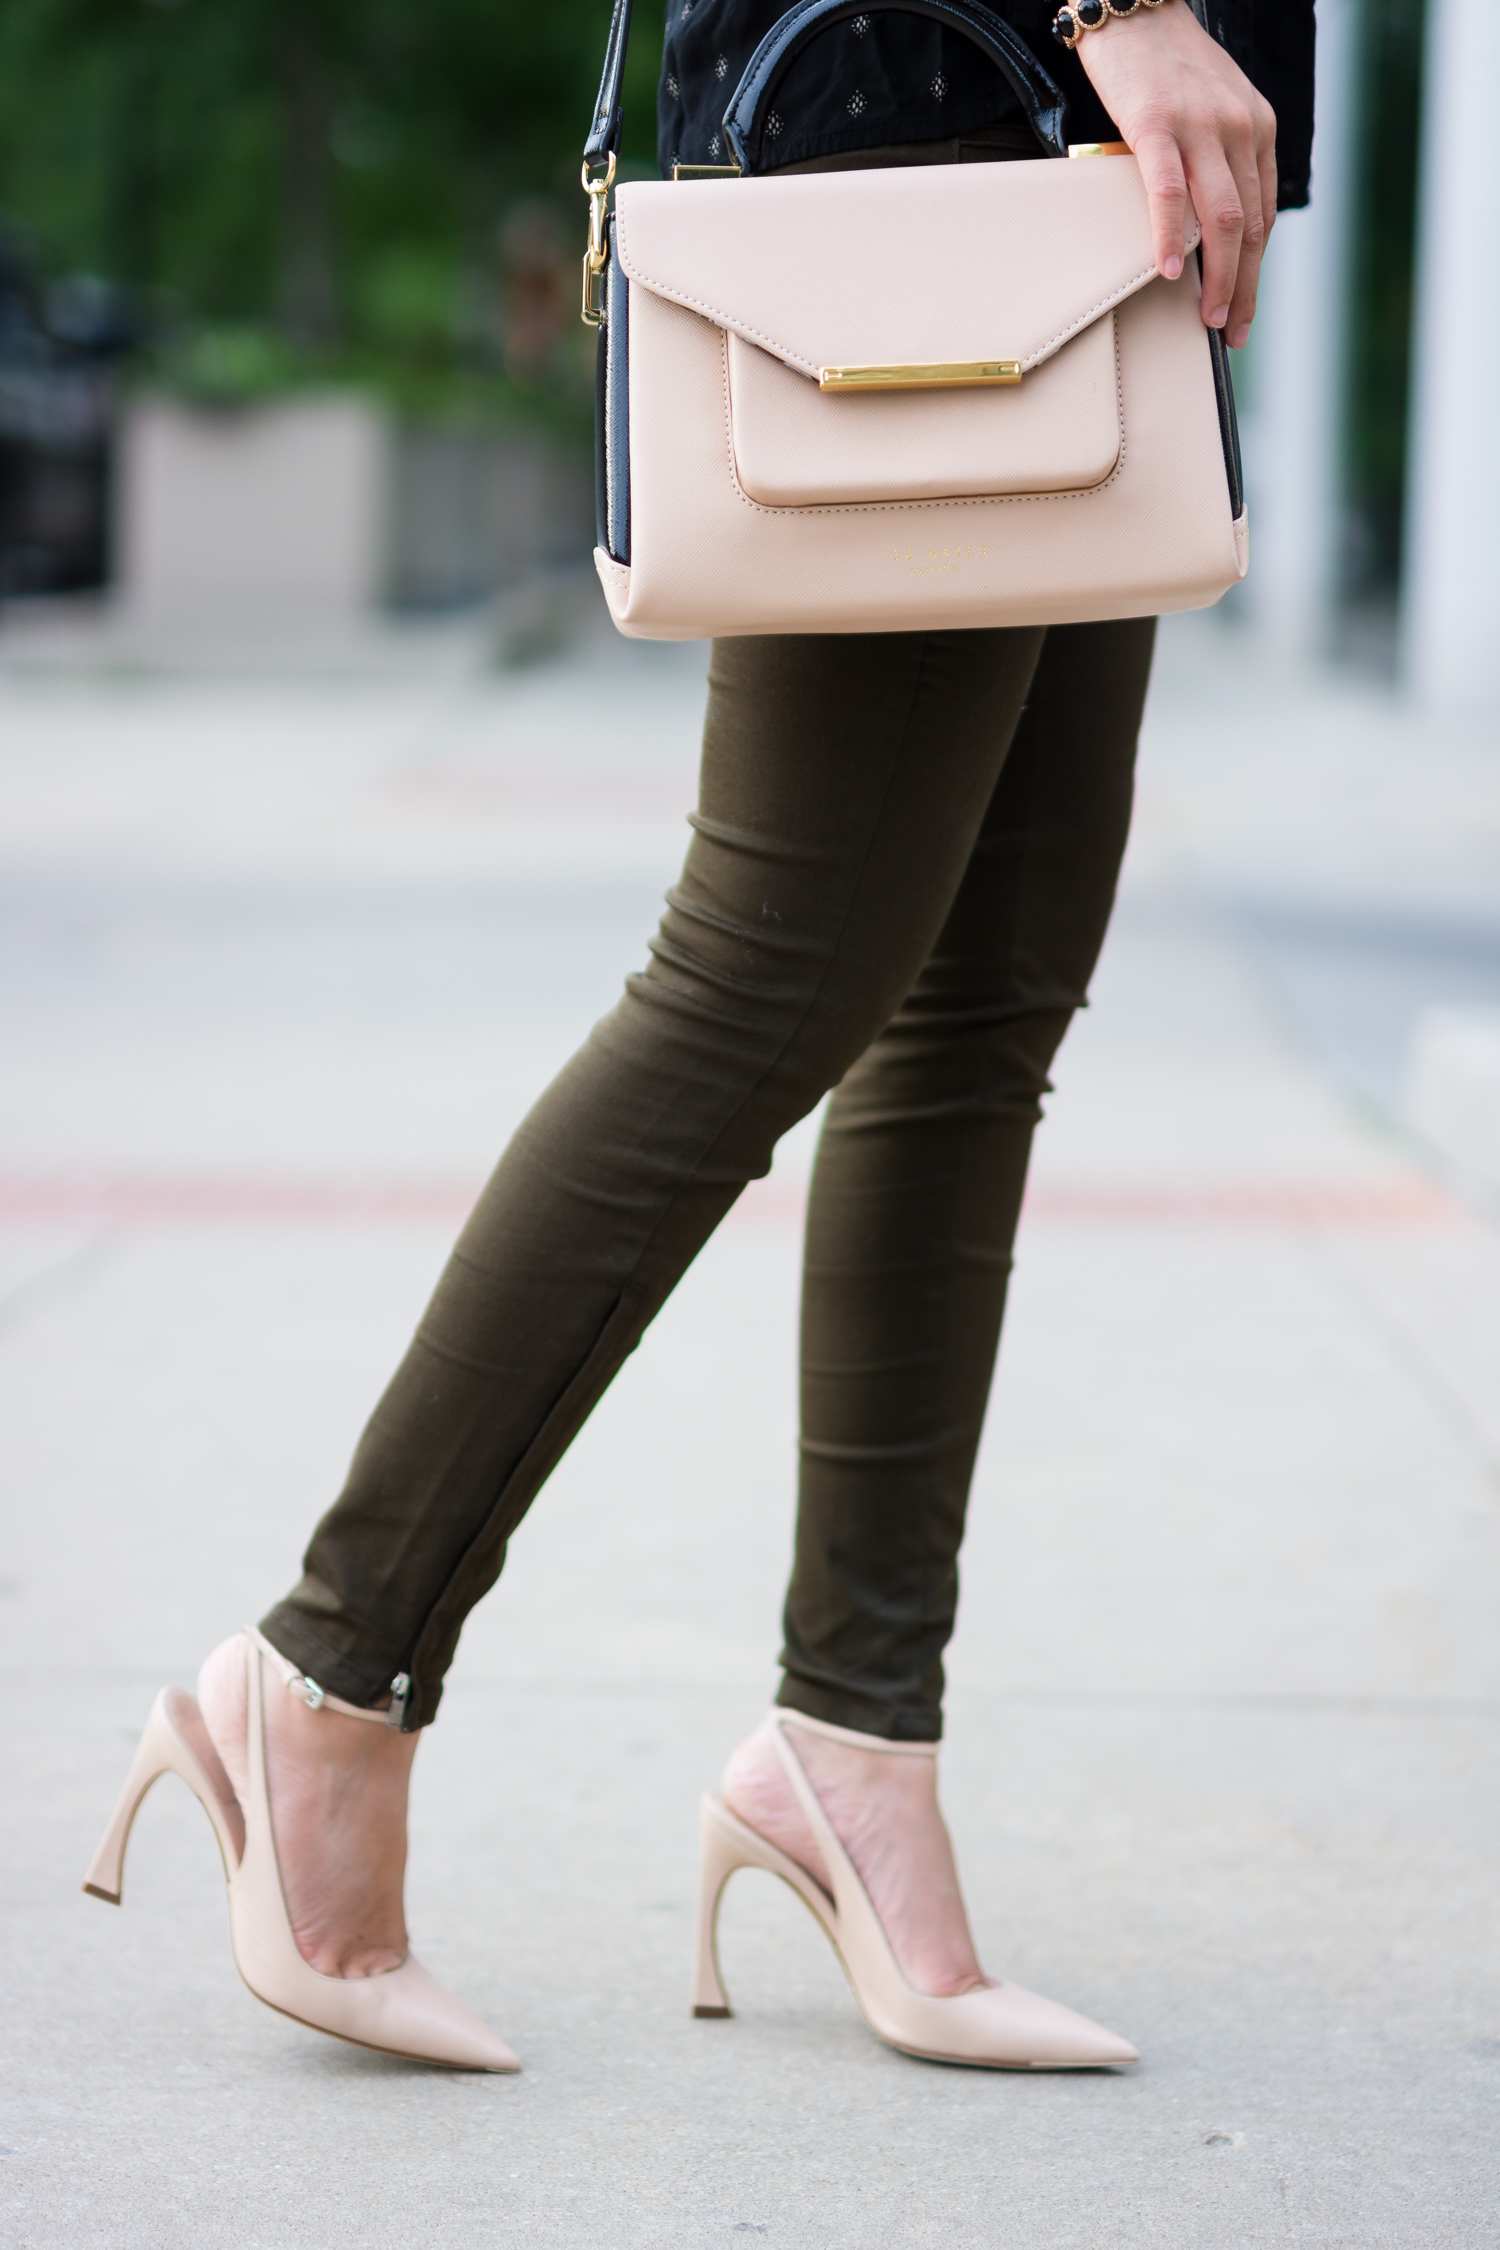 Parlor Pizza, Date night, olive green pants, blush pink, nude heels, Ted Baker, Christian Dior, Zara, Old Navy, Casual Chic